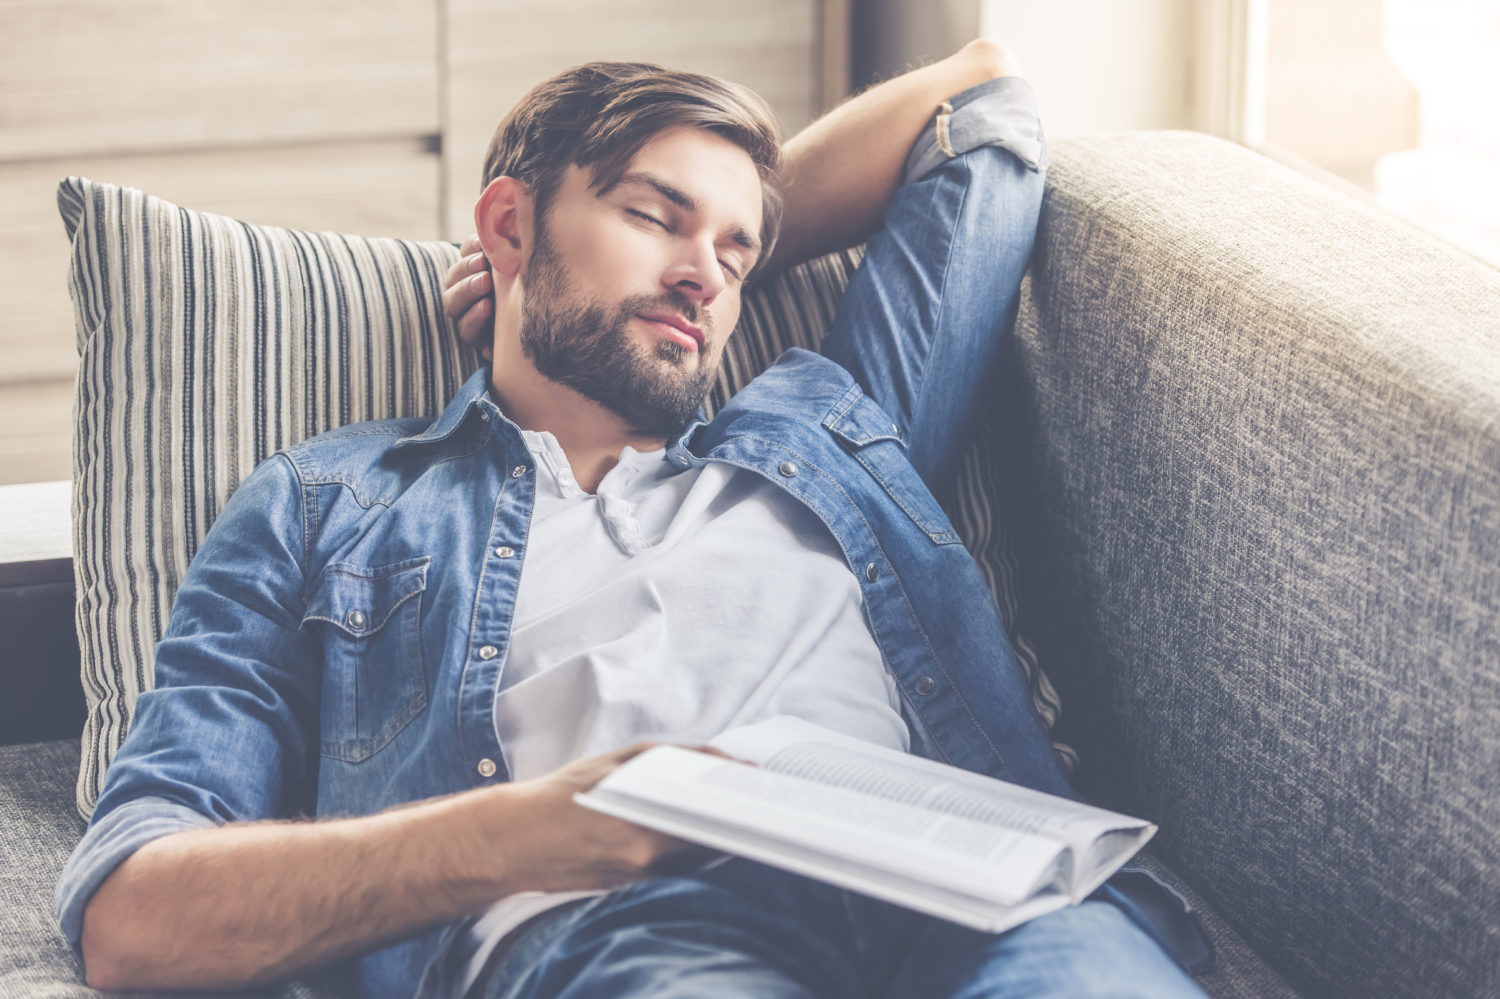 Get paid to nap: Company hiring reviewers for study